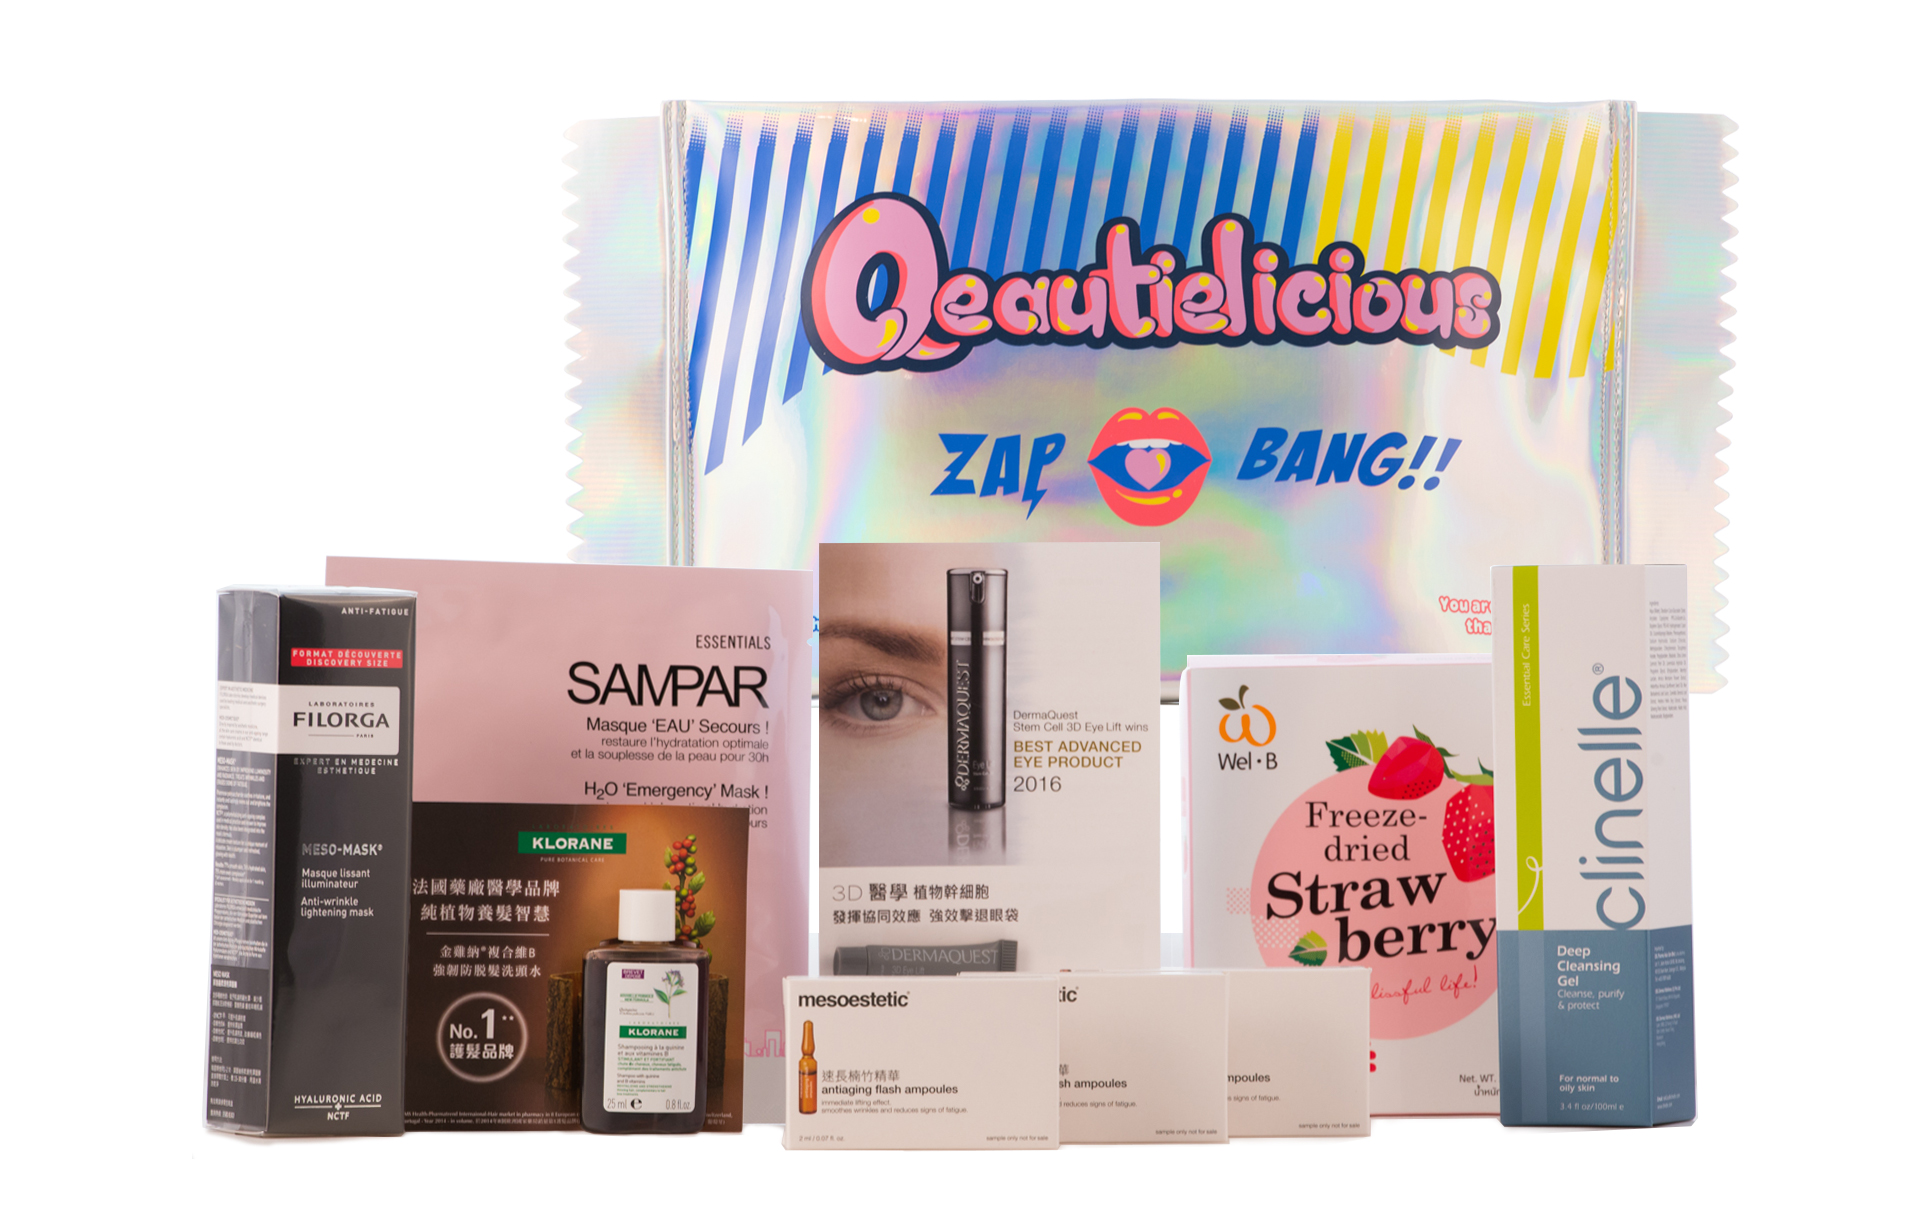 http://www.qeautybox.com/media/catalog/product/p/r/product_b_0517.jpg